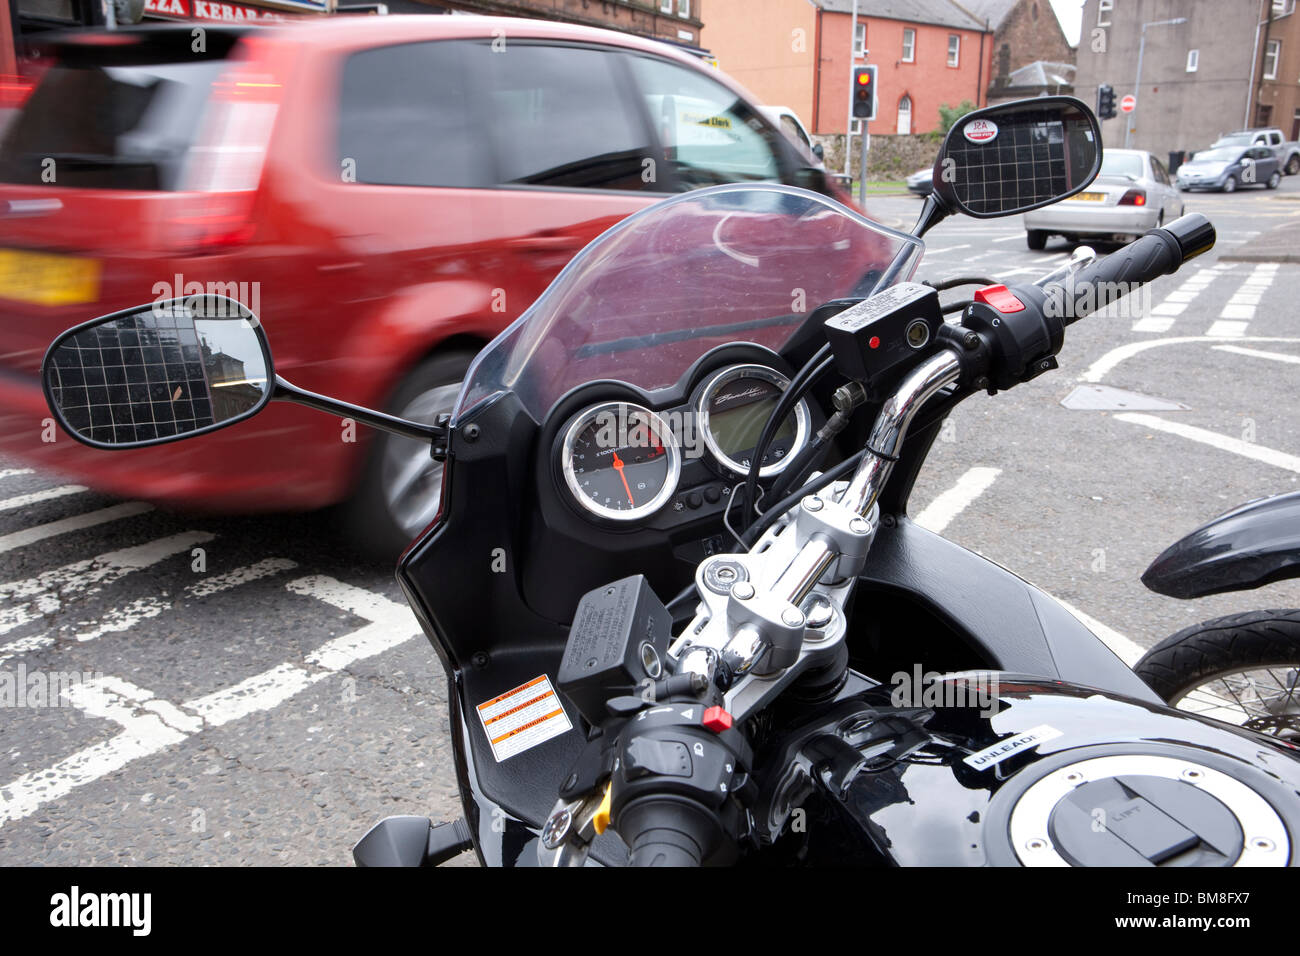 In town motorcycle handlebars looking down at speedo and instruments dials with car speeding past in background - Stock Image